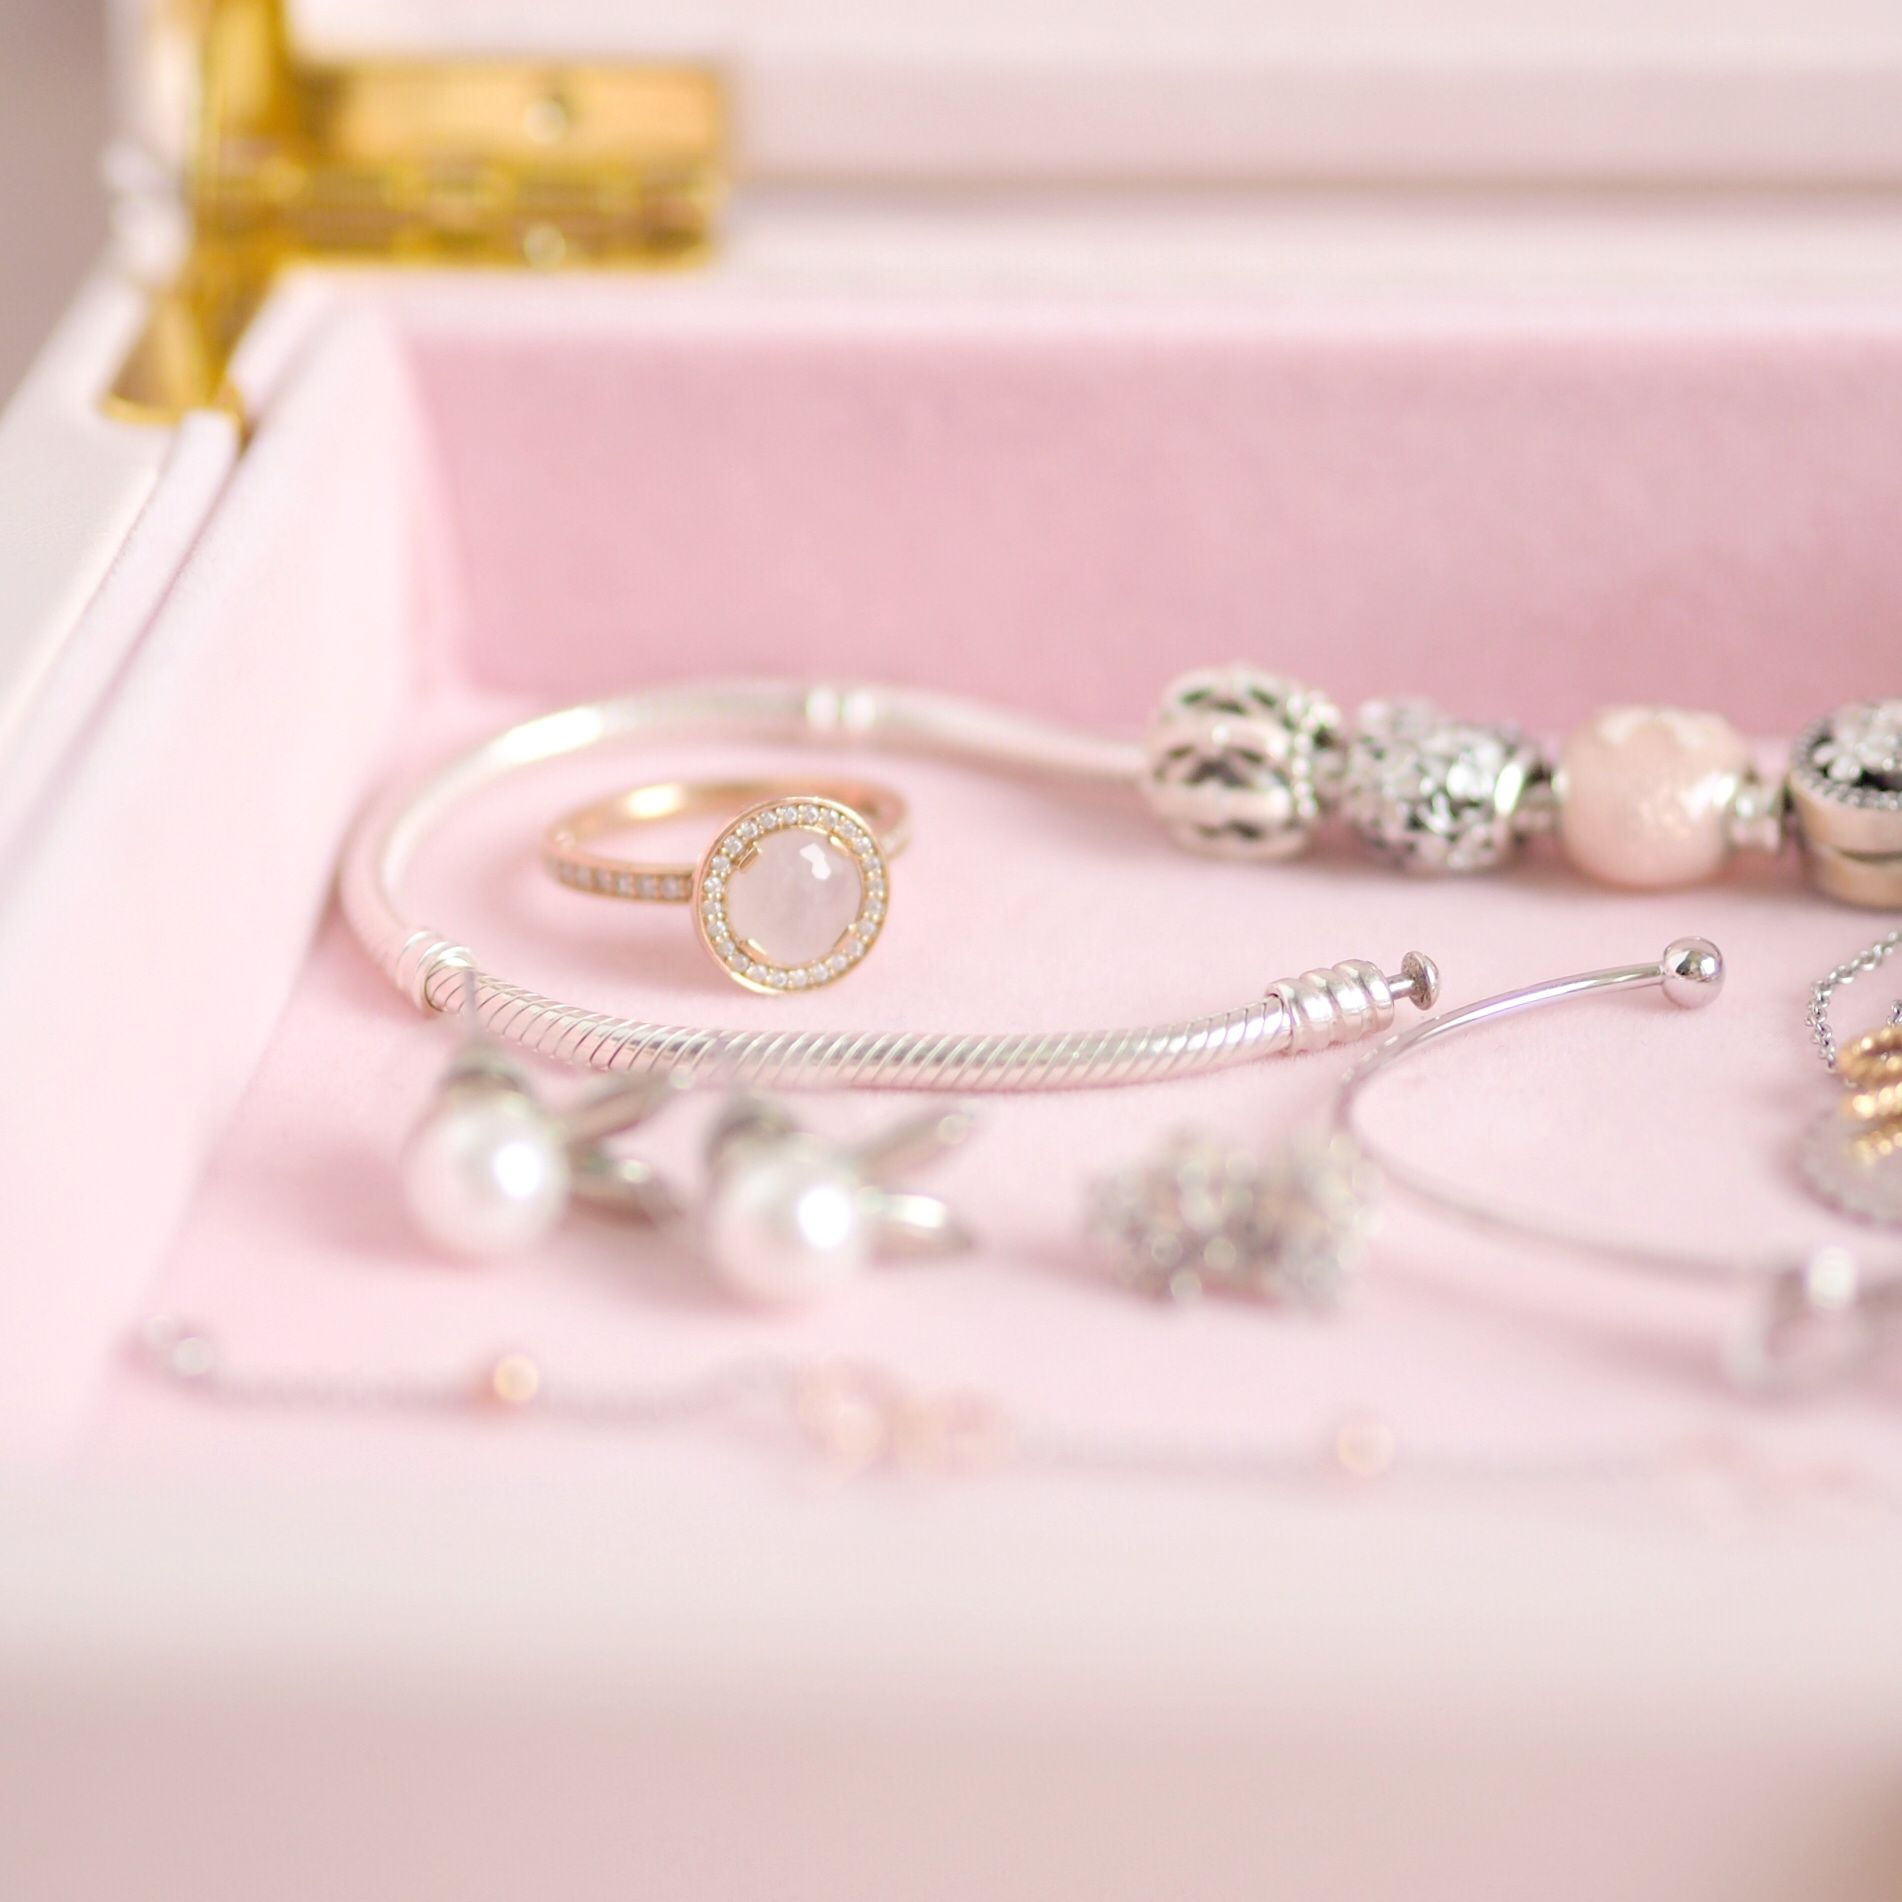 Inside My Jewellery Box: My Favourite Dainty Pieces, Thomas Sabo Rose Quartz Halo Ring | Love Catherine